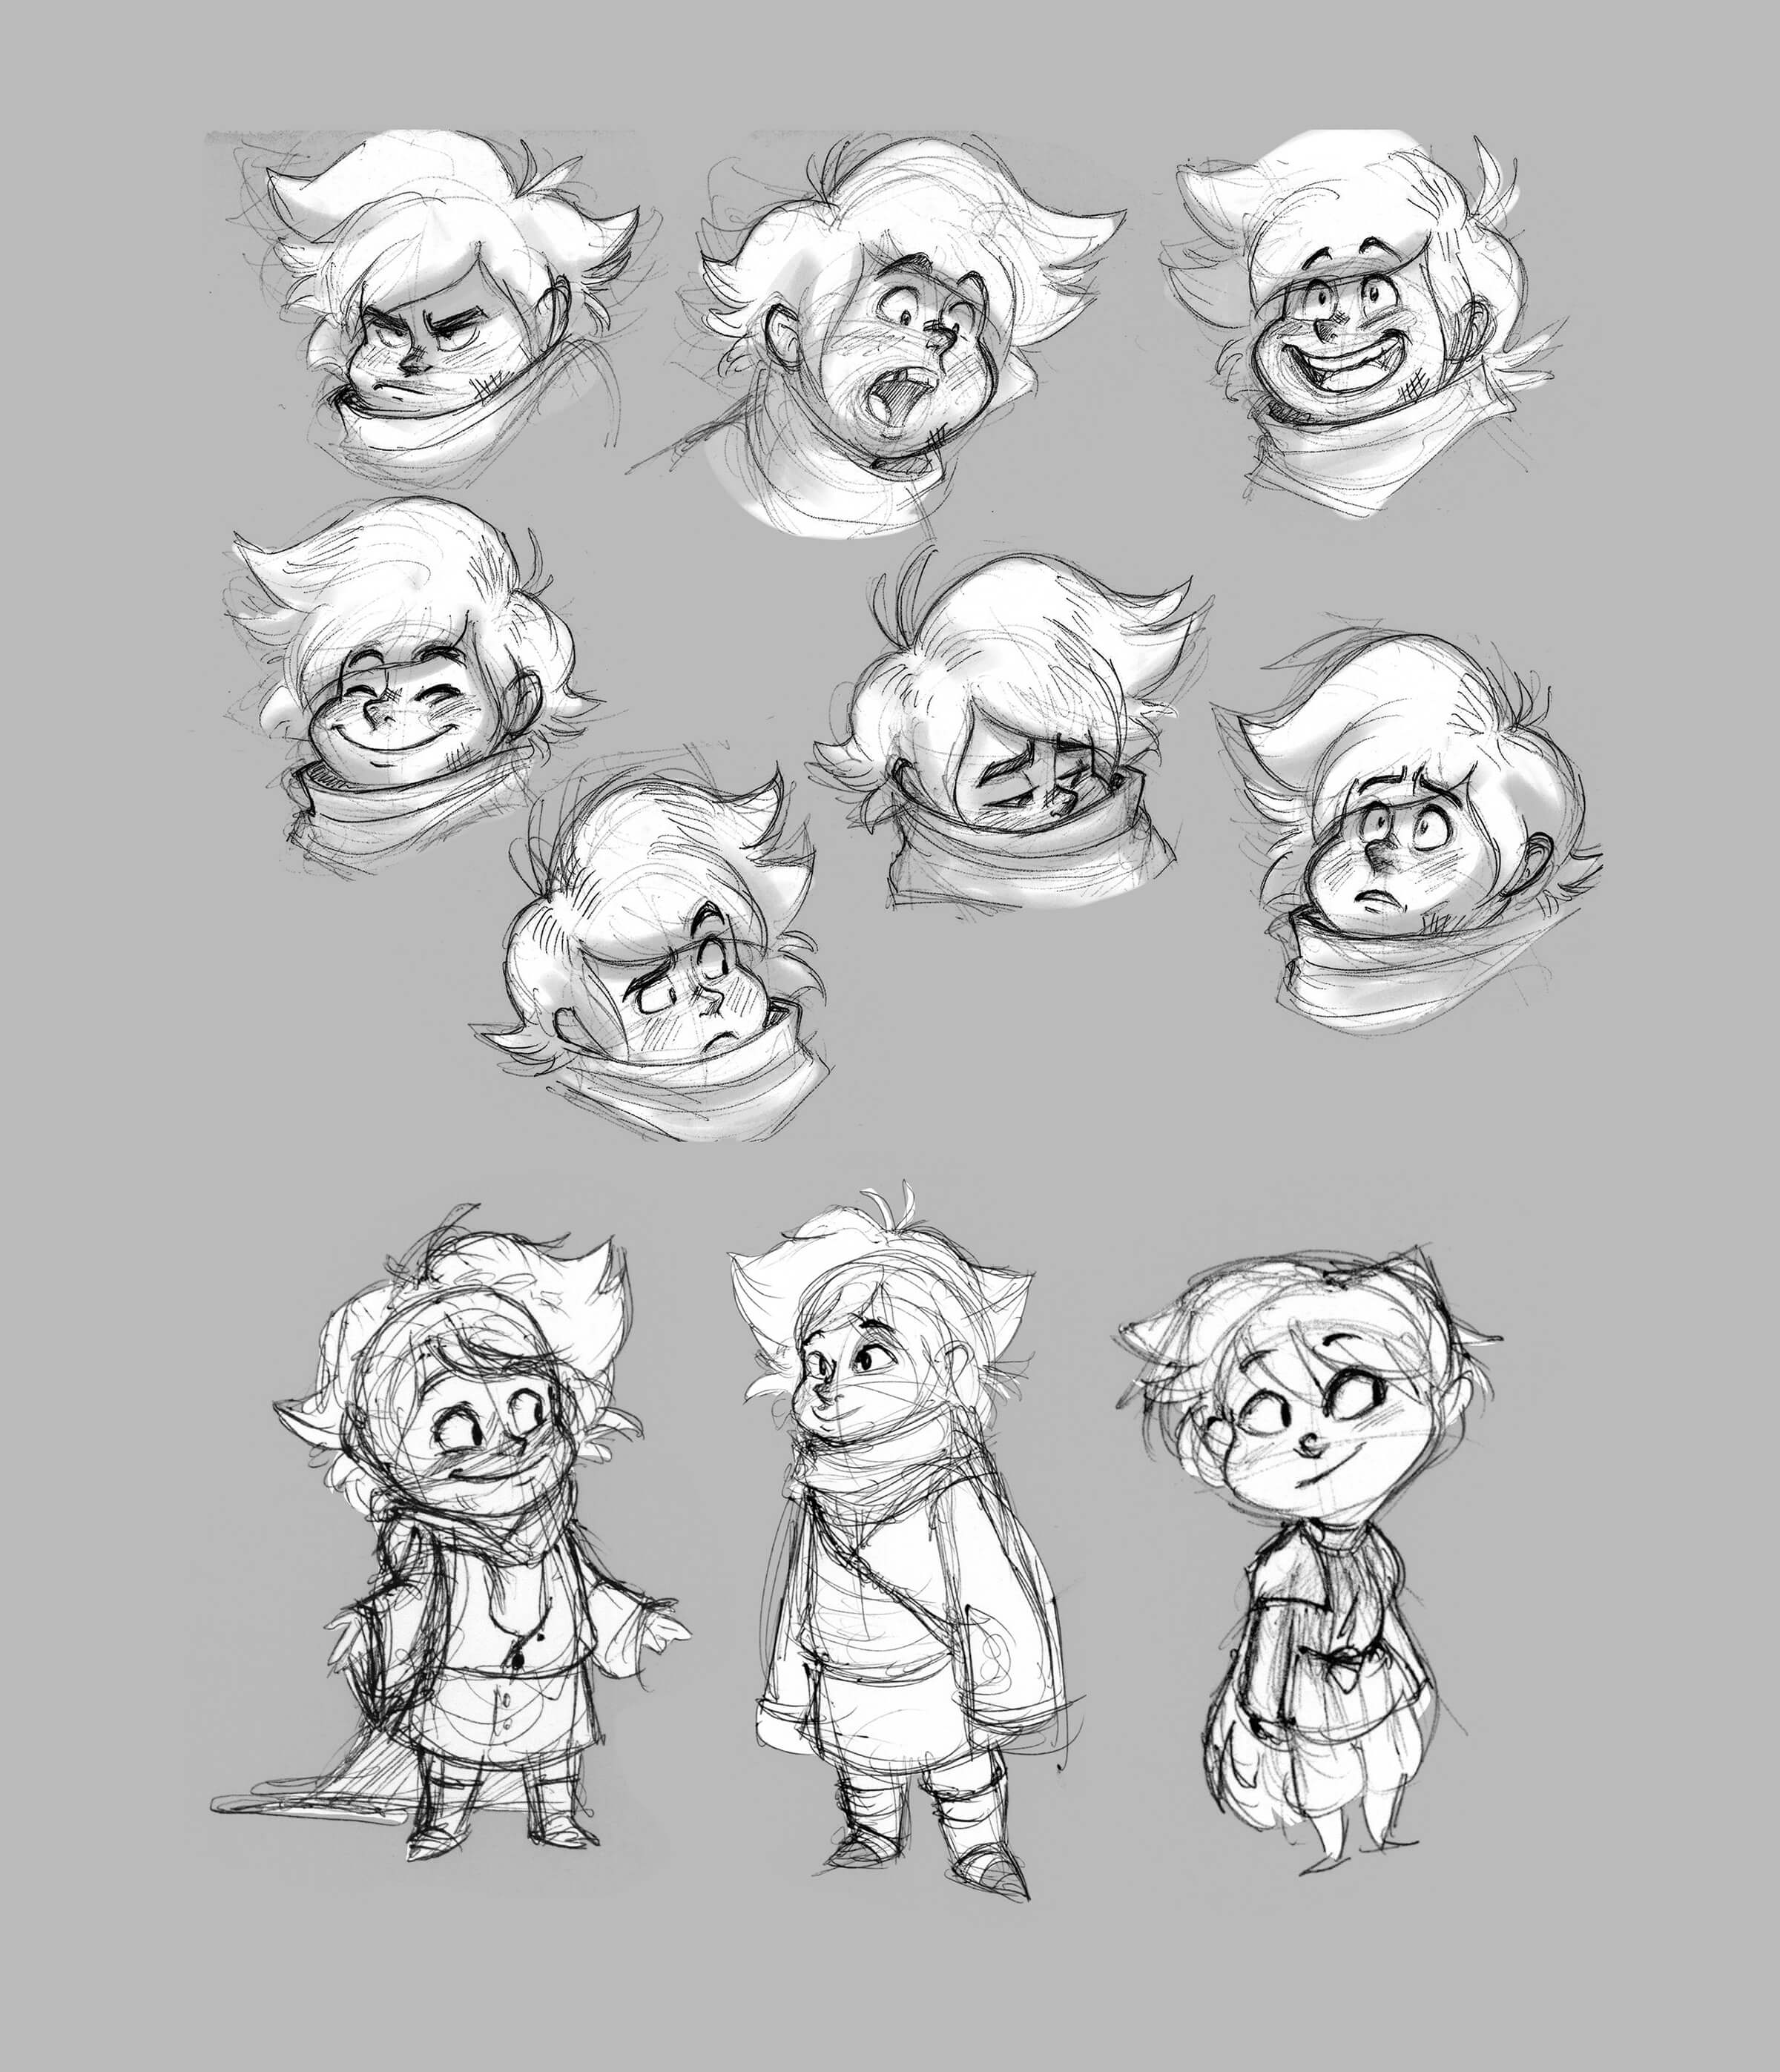 Various facial expressions of a turtlenecked character with wild hair